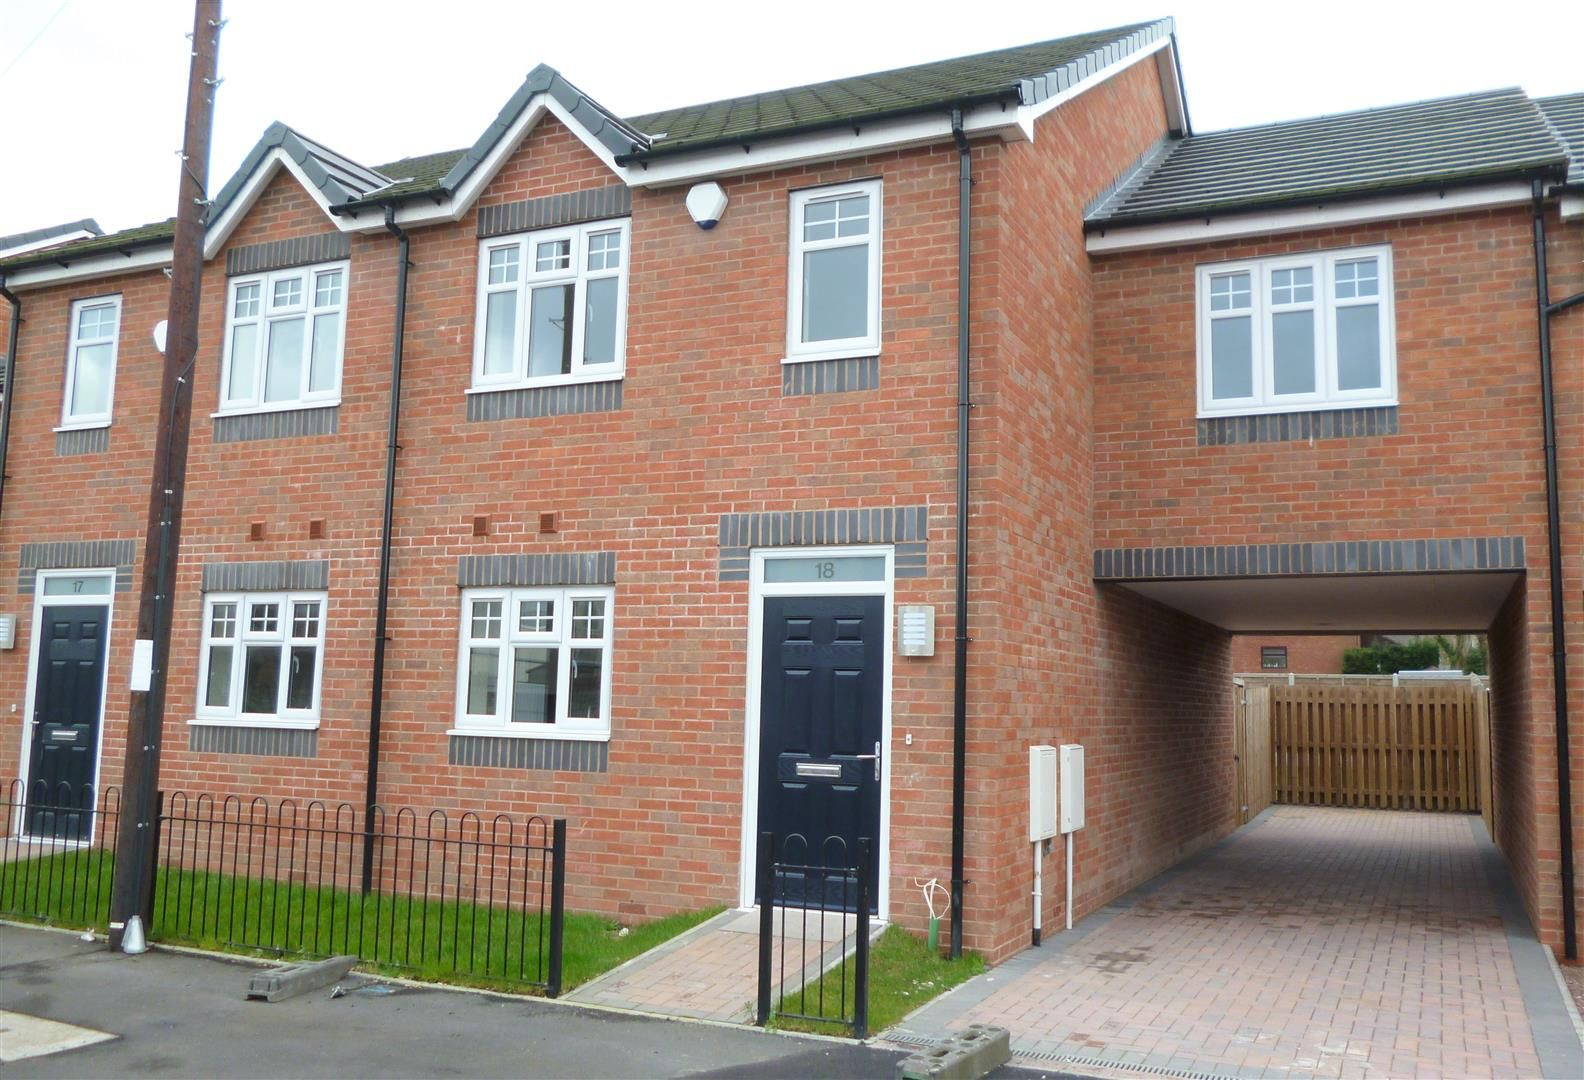 4 bed semi-detached for sale, DY4